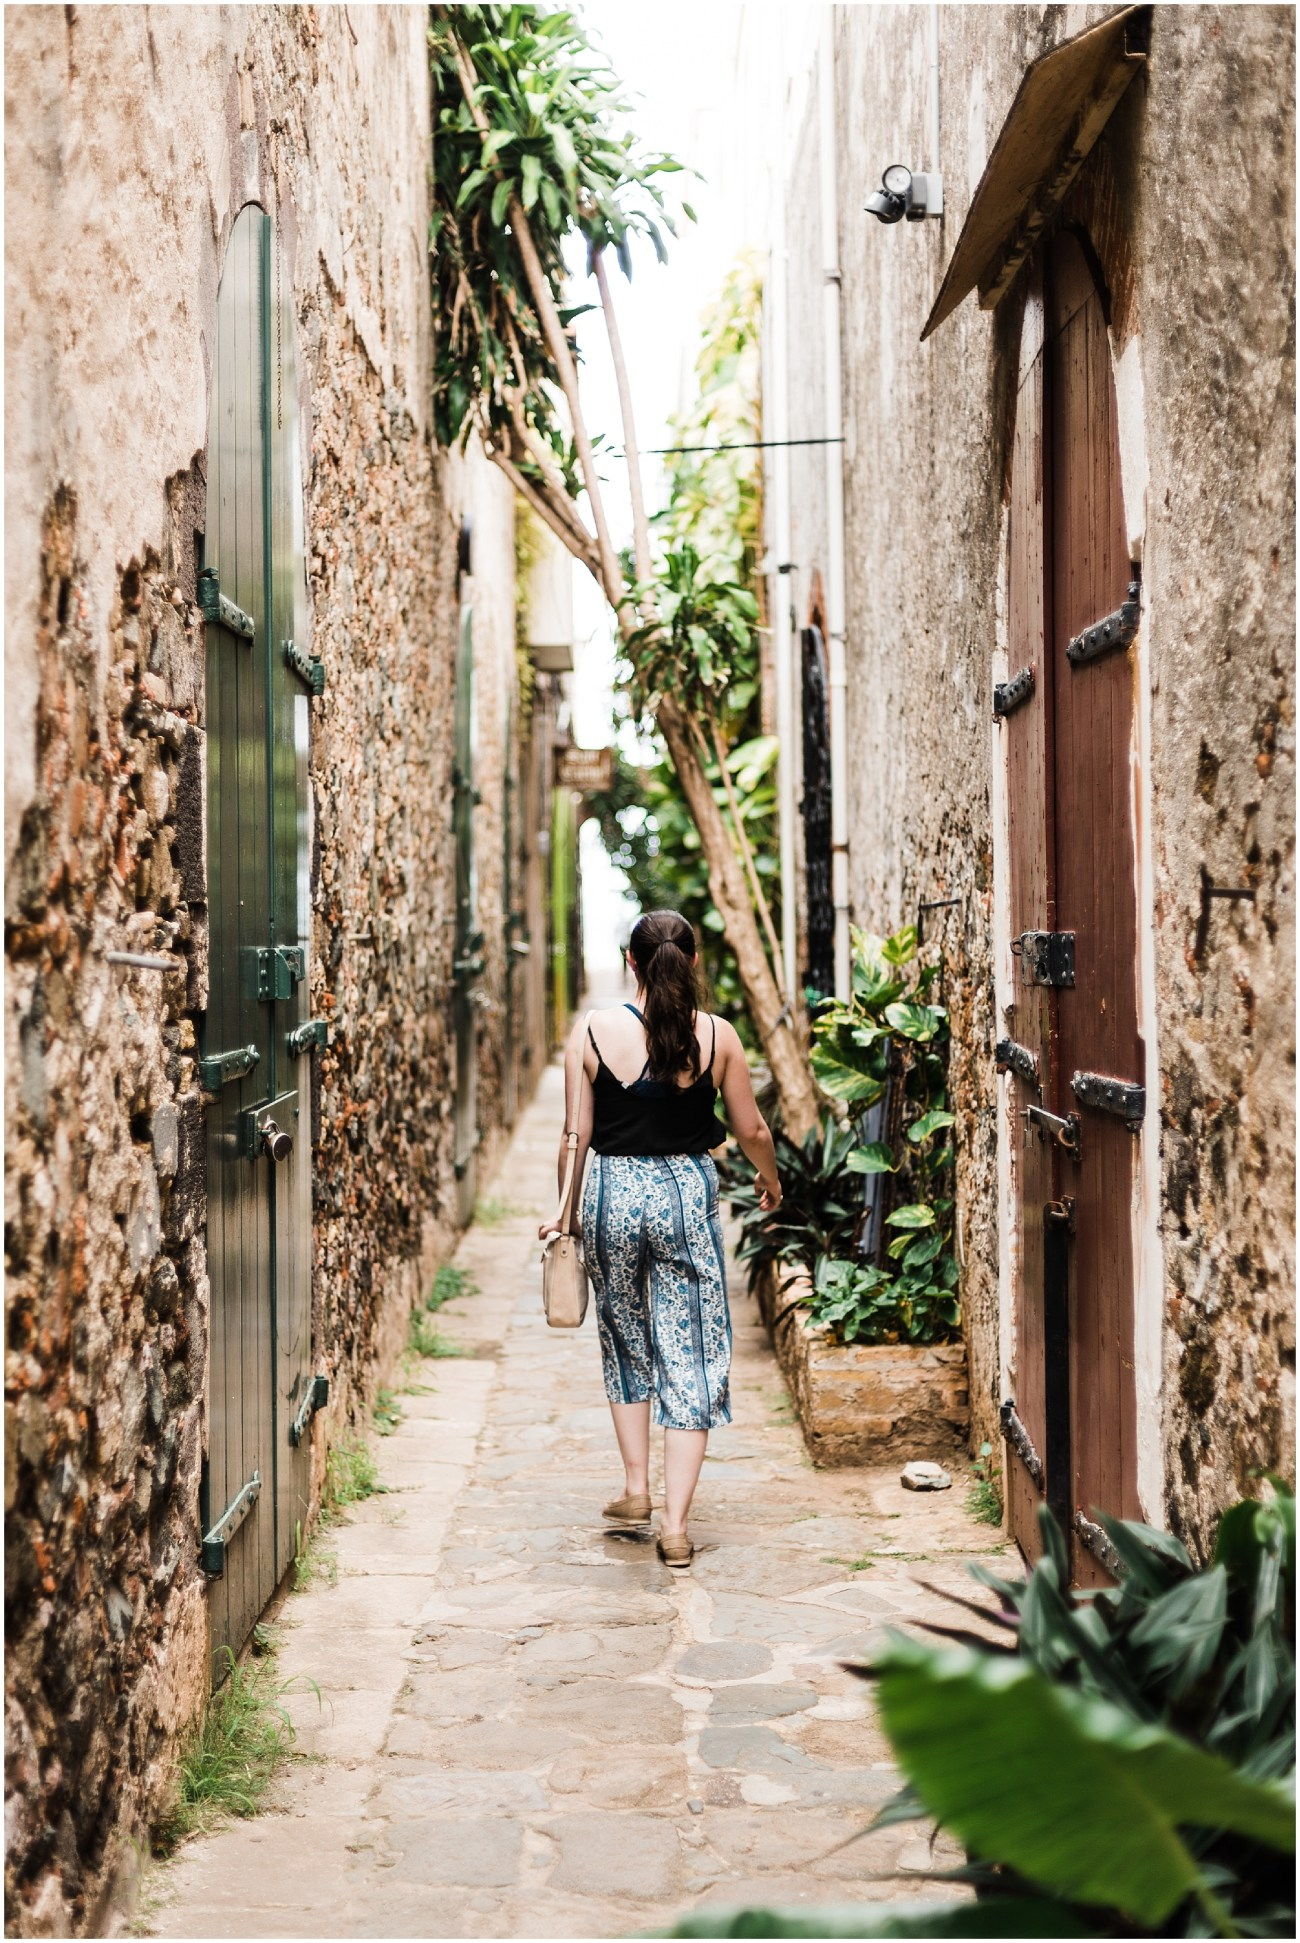 Photo of Laura walking in the alleys of Charlotte Amalie, St. Thomas, US Virgin Islands